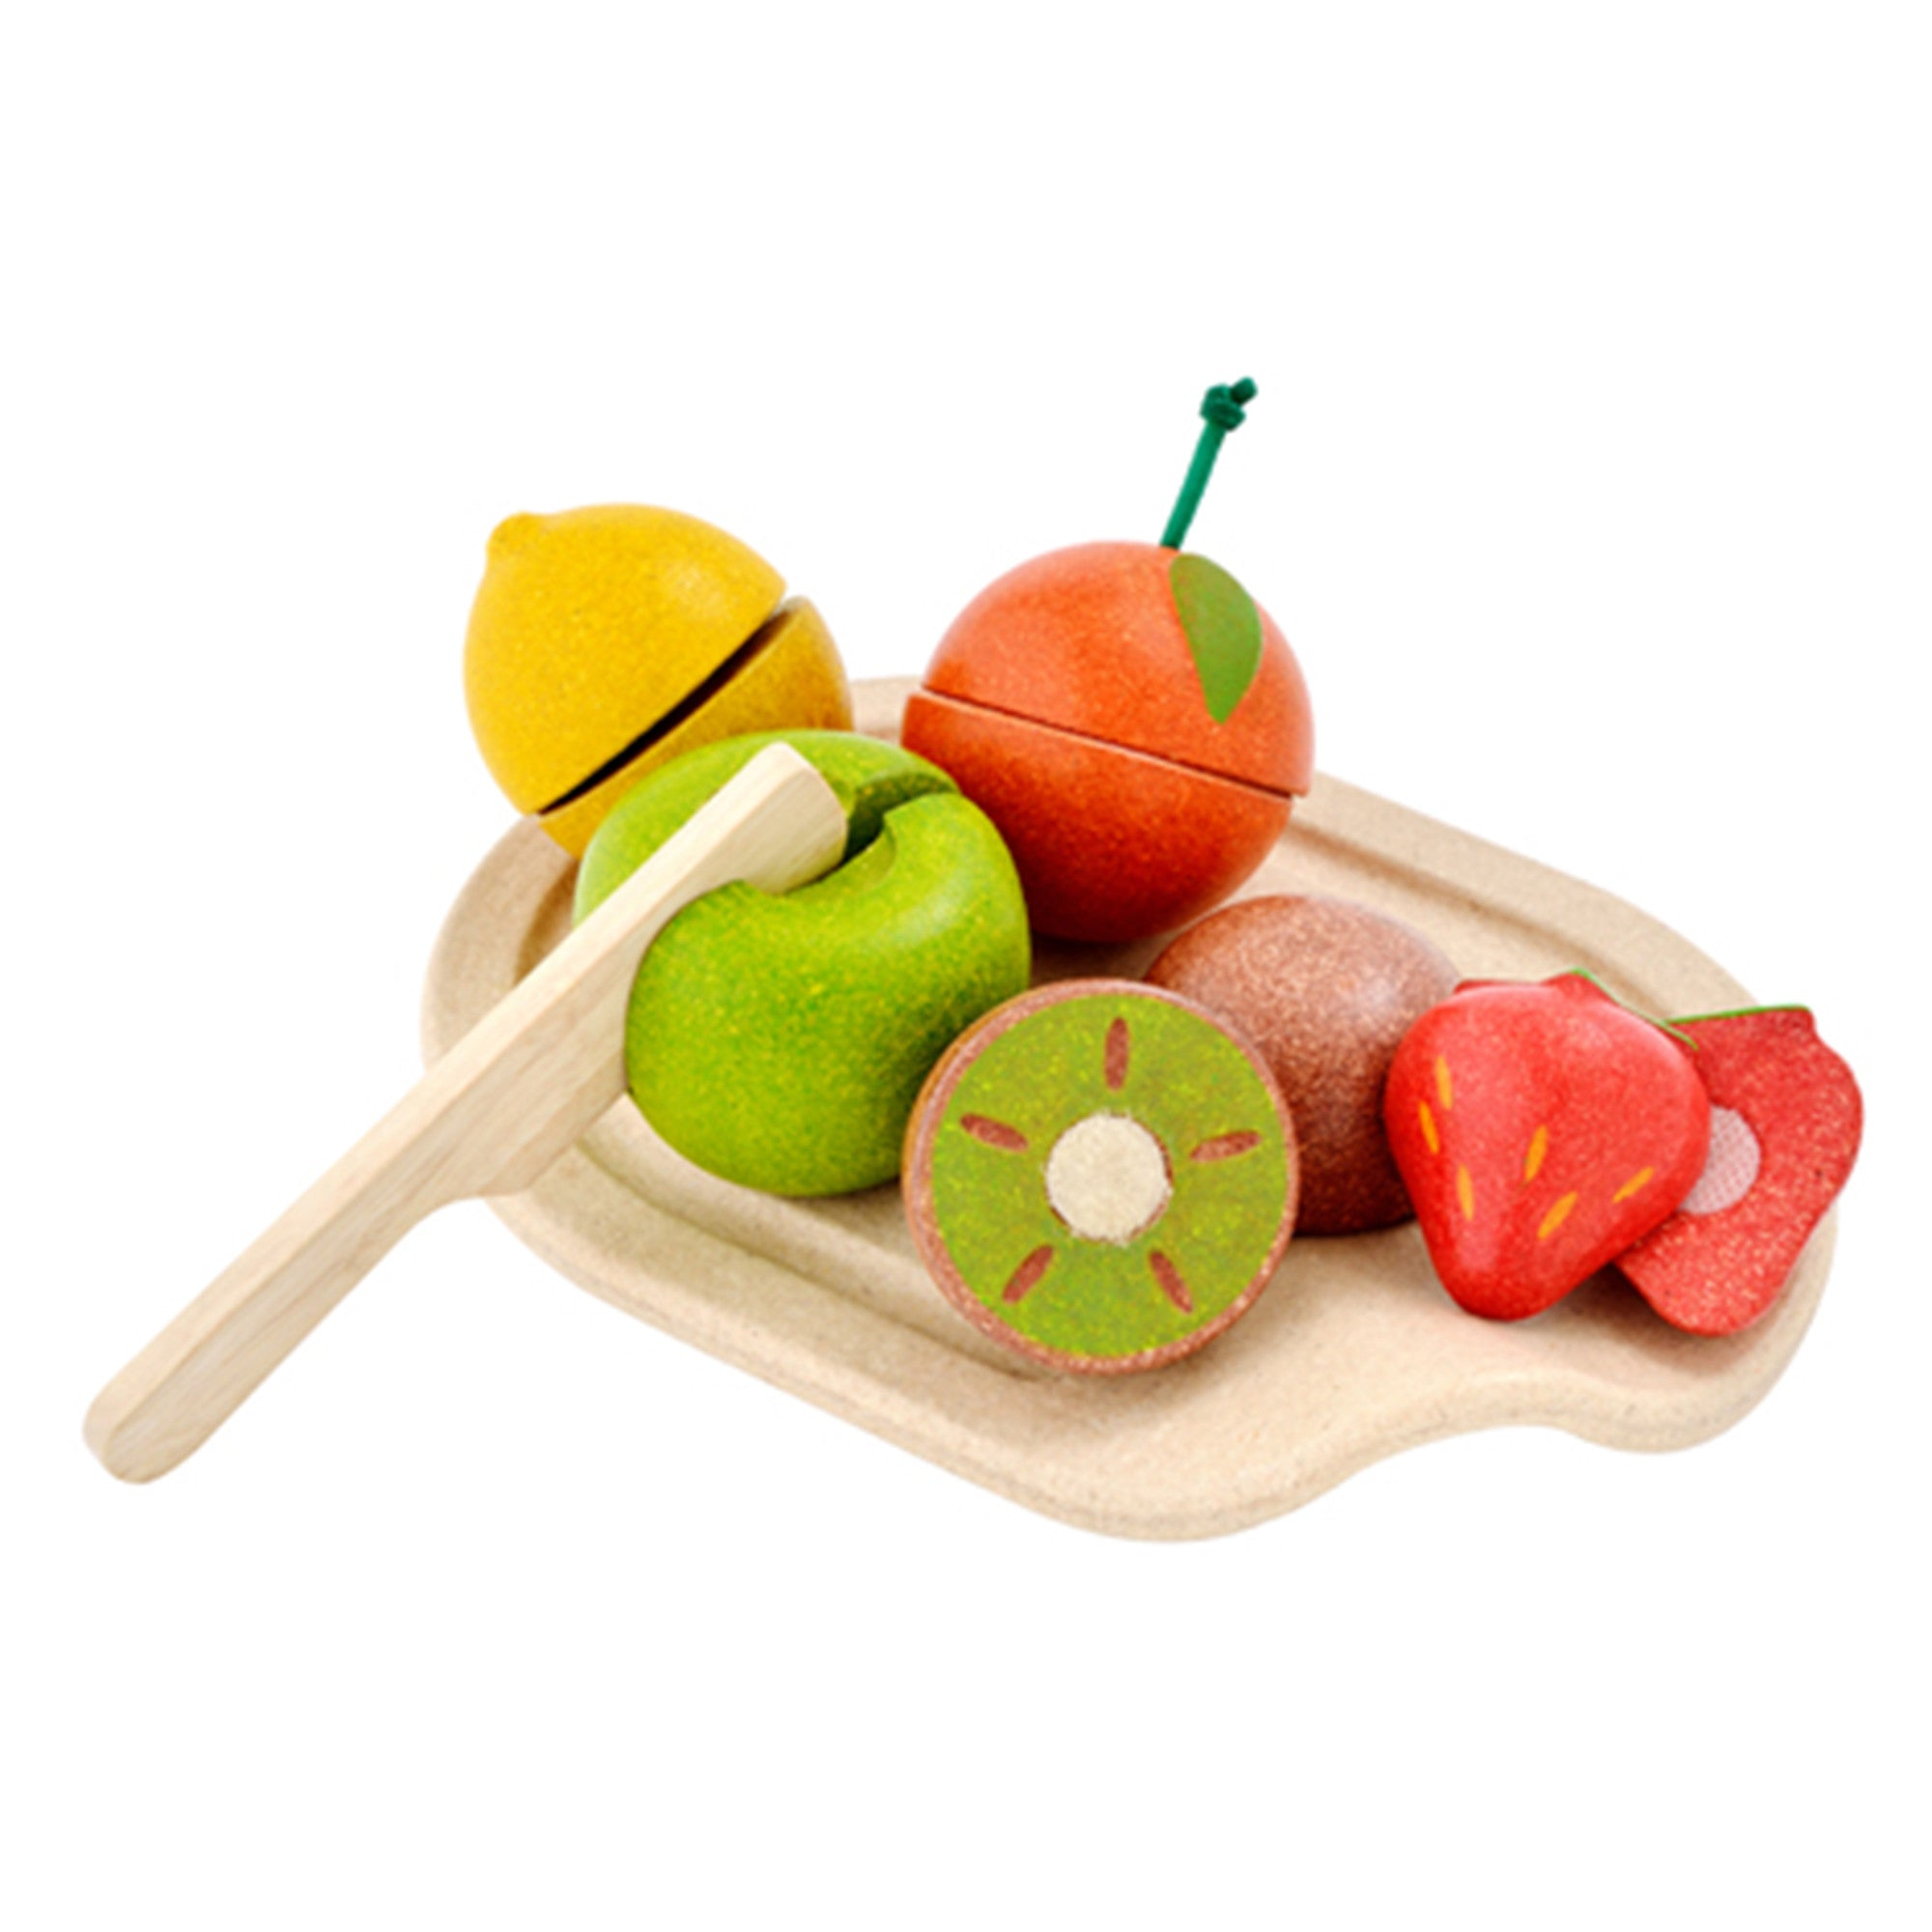 shop for plan toys & wooden toys in australia - little earth